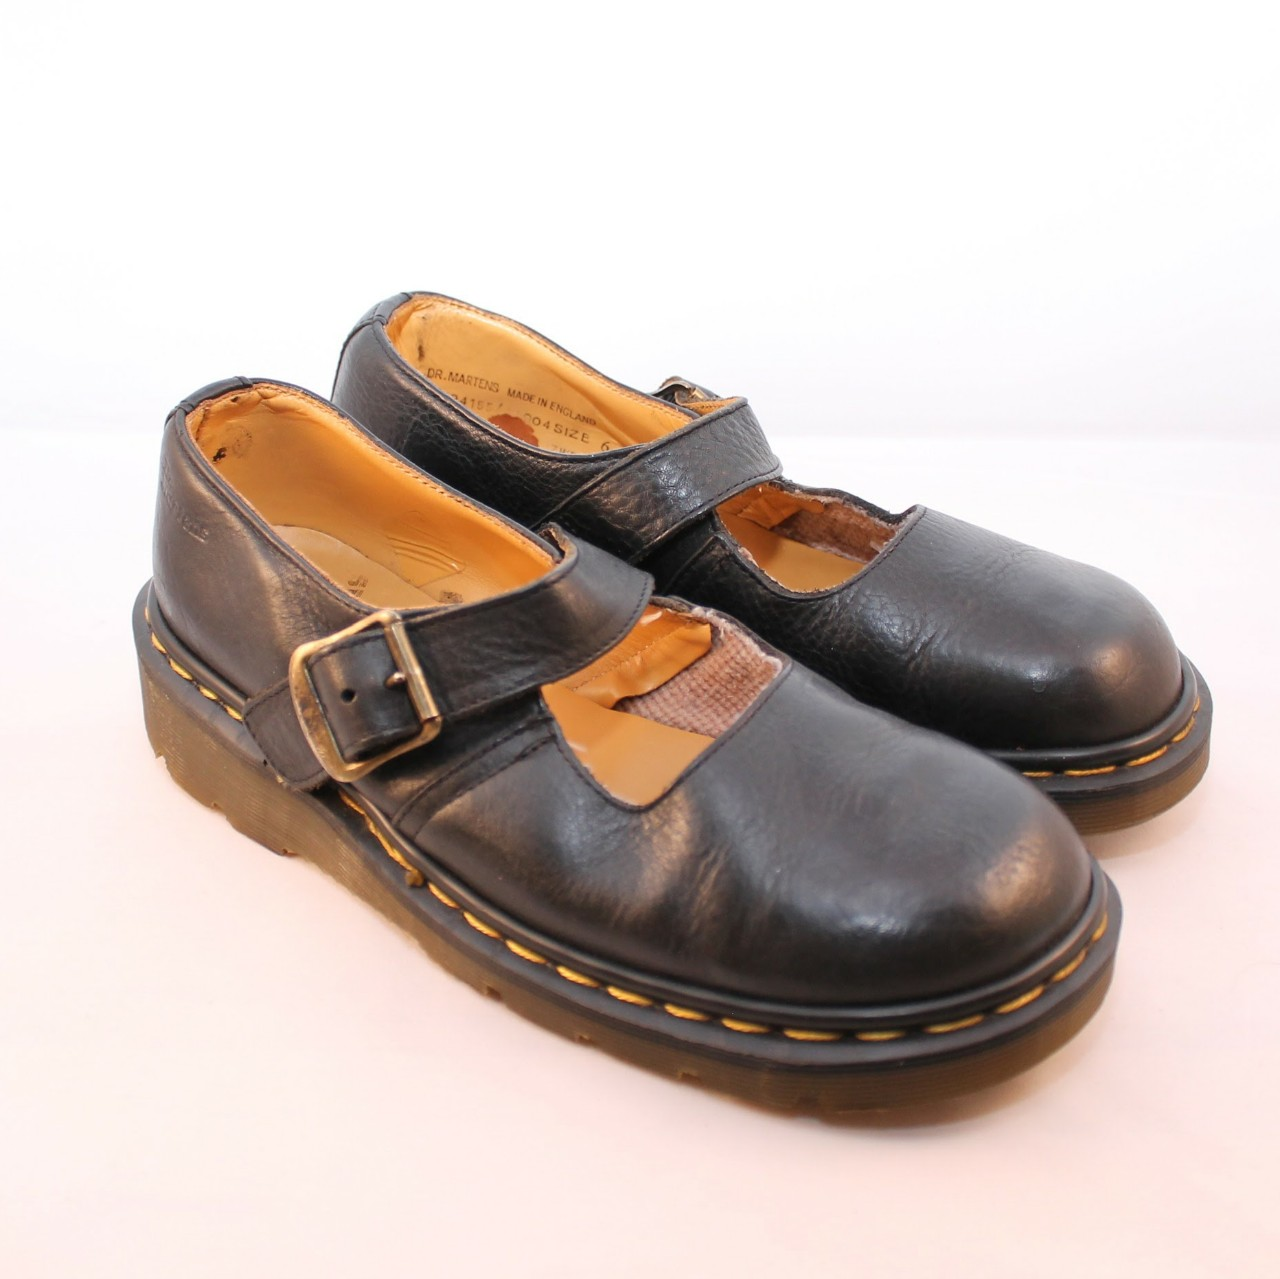 Vintage Dr Marten's Mary Janes size 8 90s Mary Depop